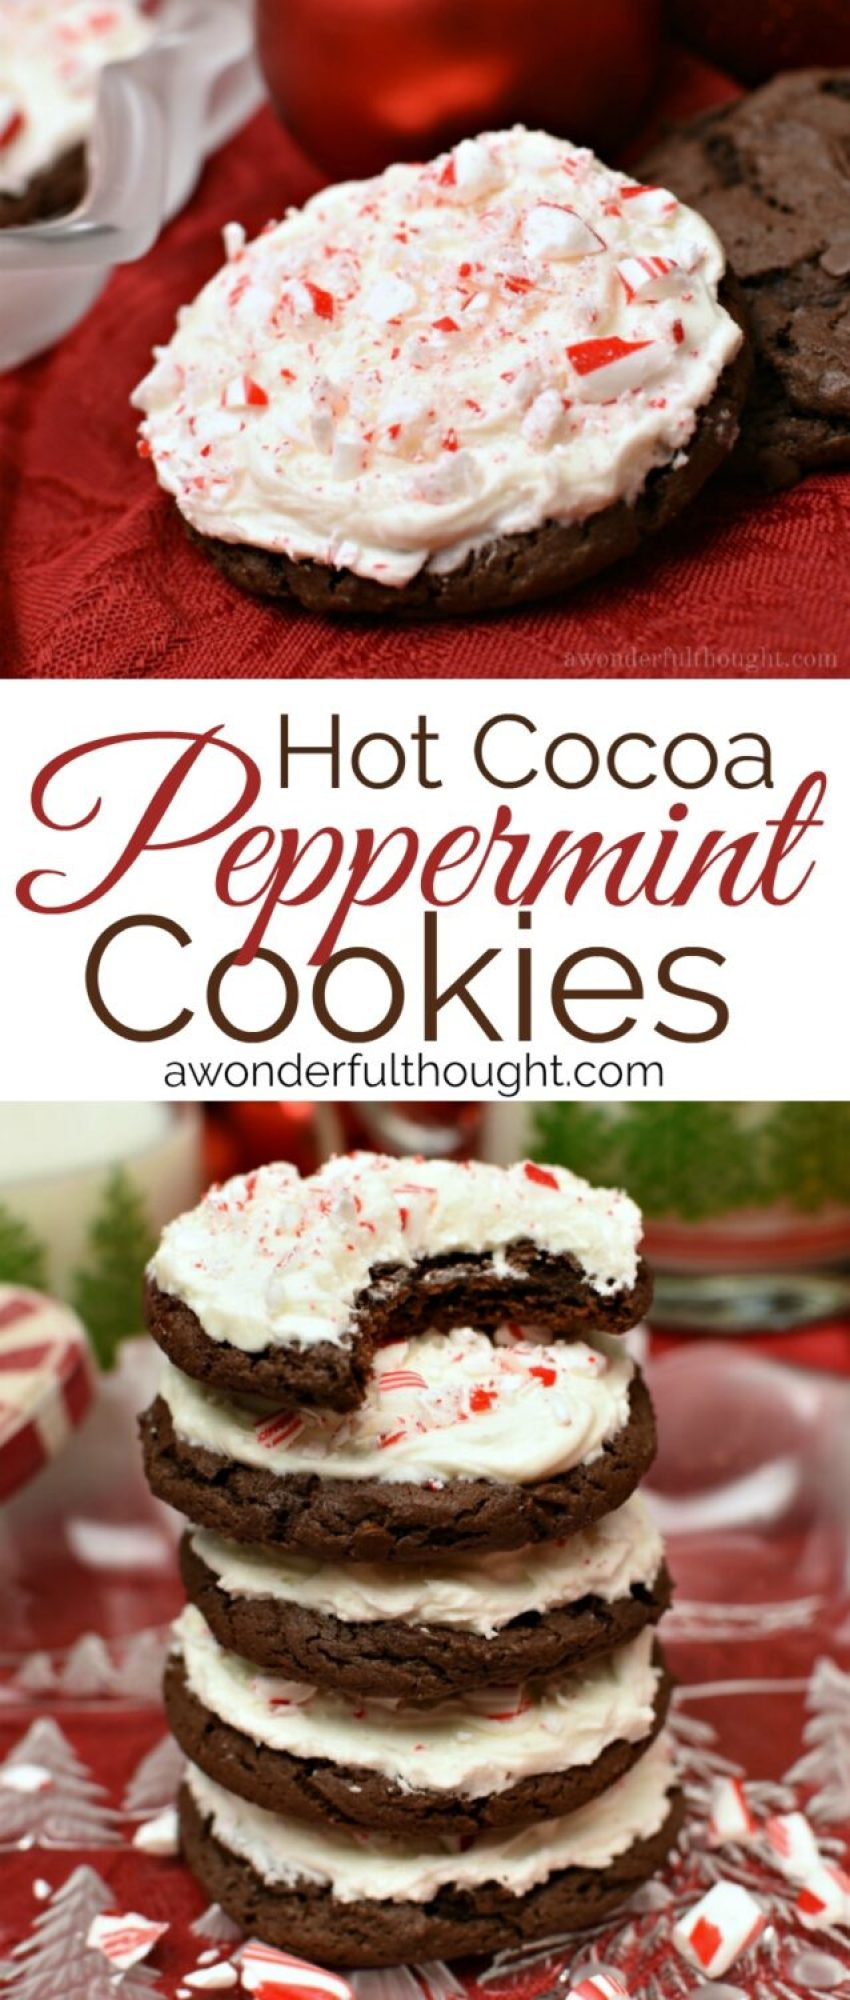 Hot Cocoa Peppermint Cookies